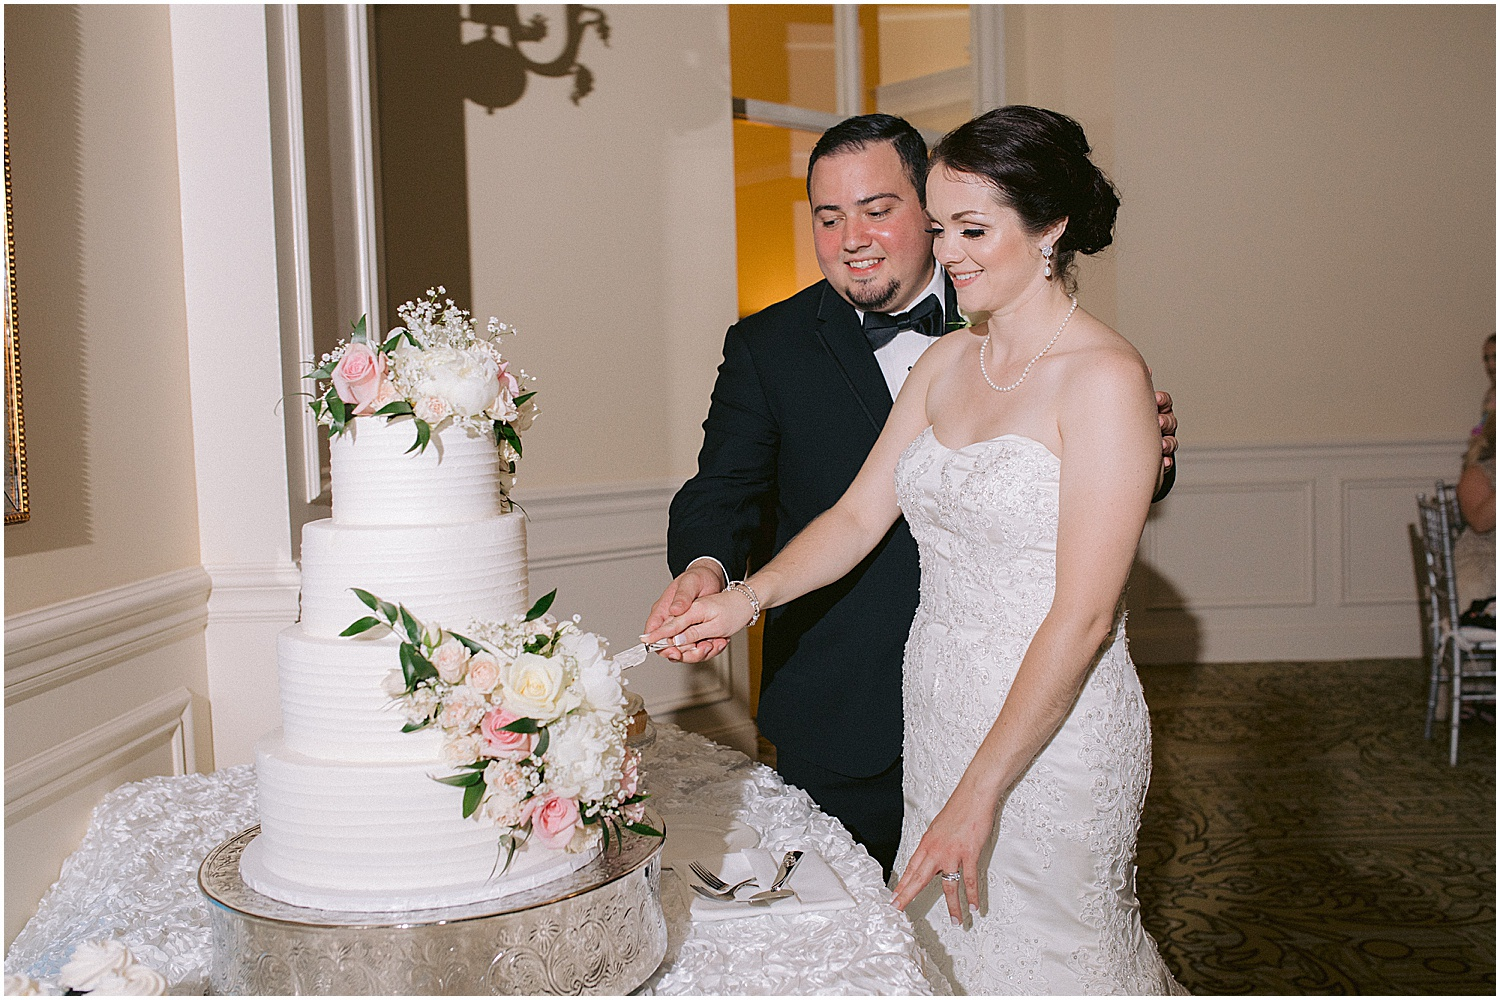 Cake by Sweet Tiers at Willoughby Golf Club